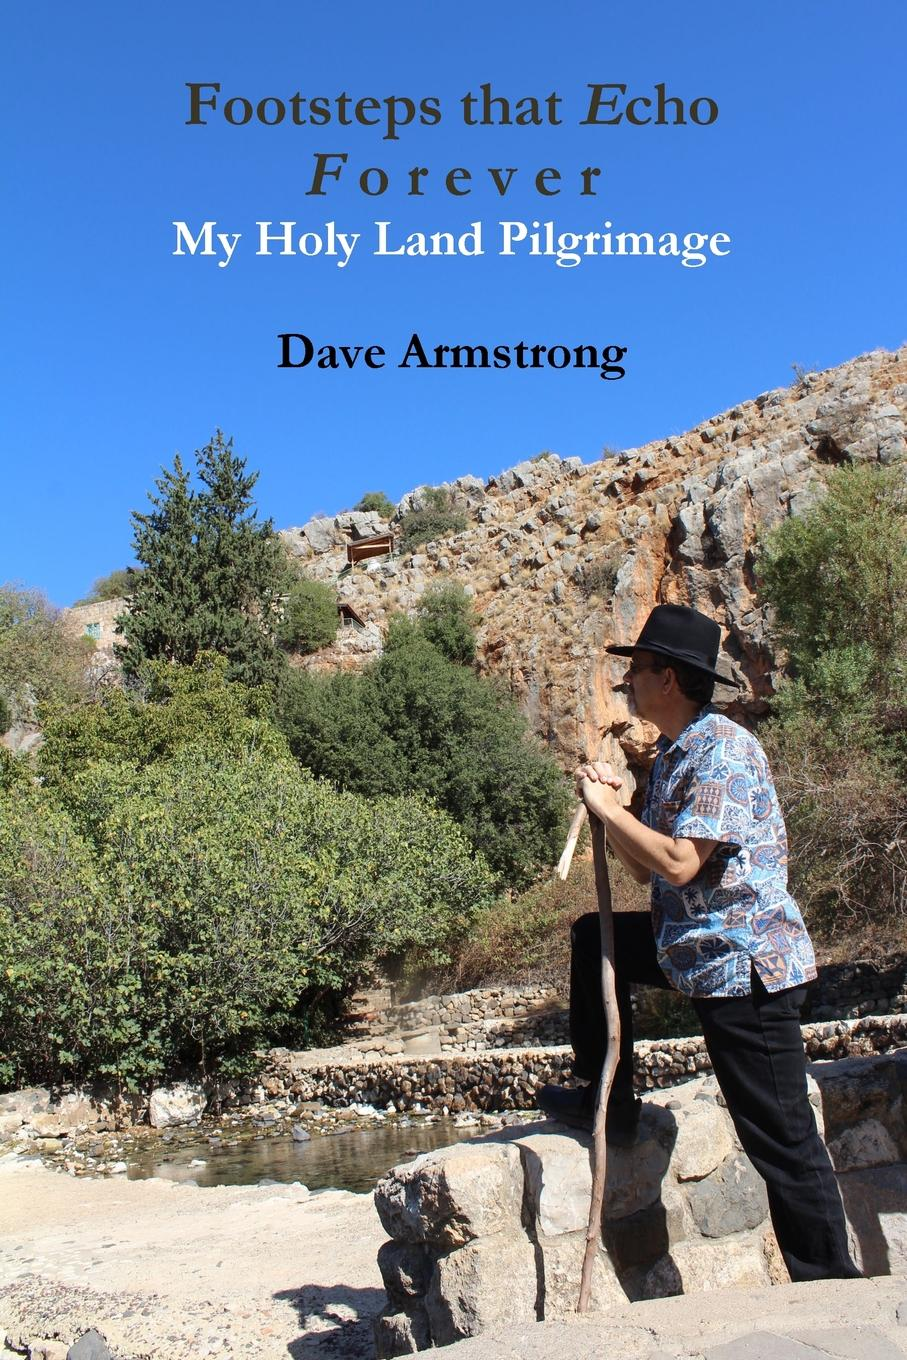 лучшая цена Dave Armstrong Footsteps that Echo Forever. My Holy Land Pilgrimage